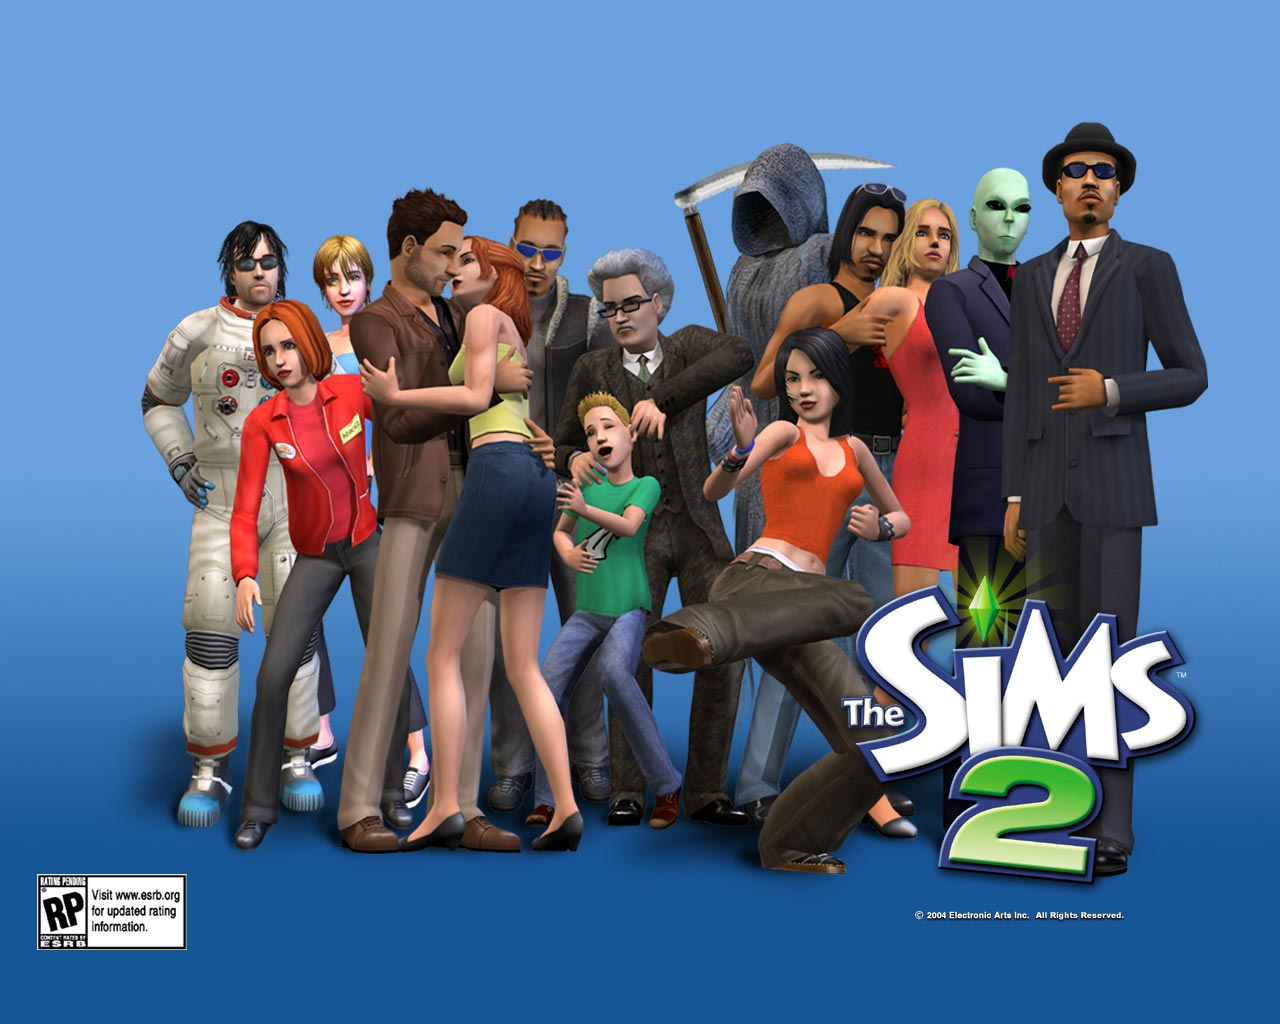 The sims 2 download.